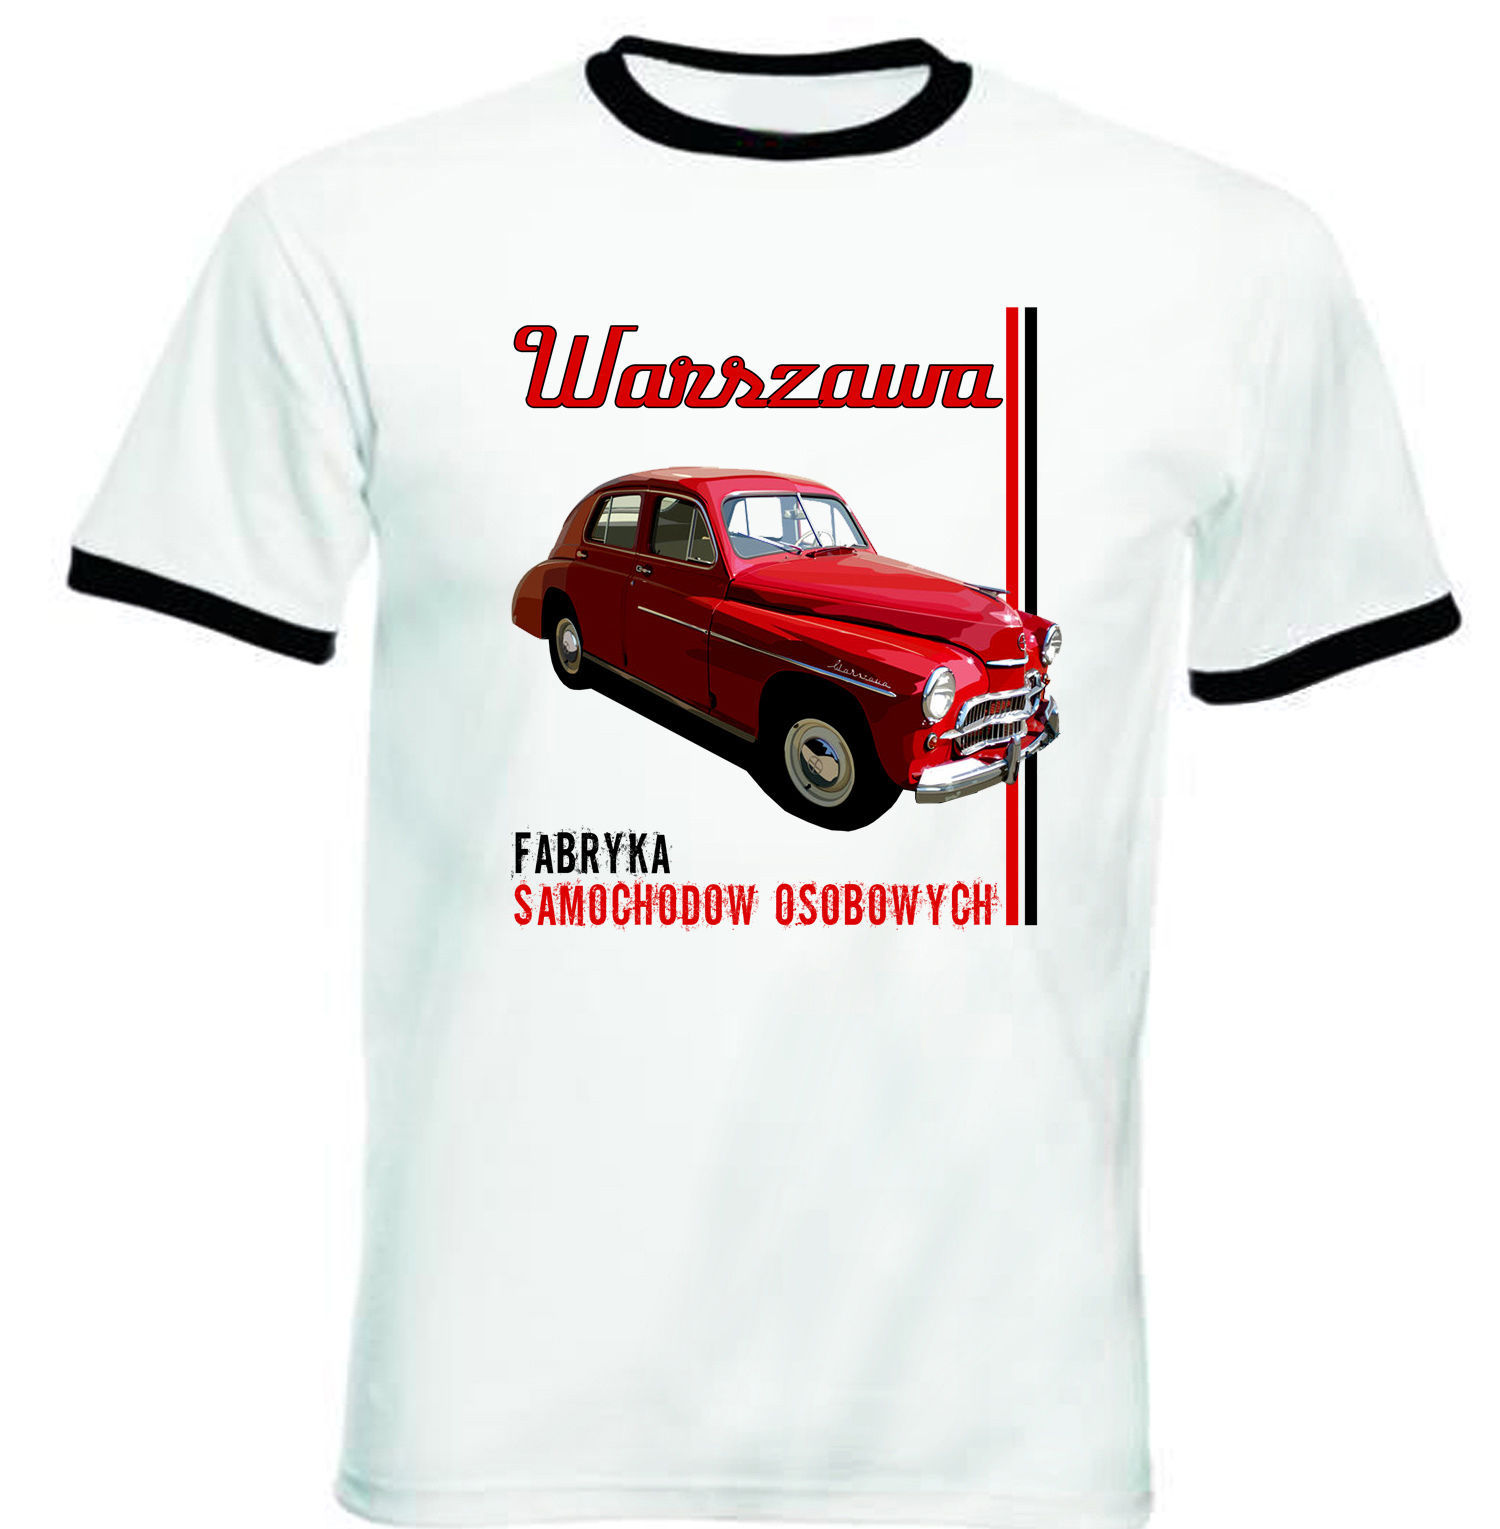 Primary image for WARSZAWA POLISH VINTAGE CAR 1 - NEW BLACK RINGER TSHIRT S-M-L-XL-XXL